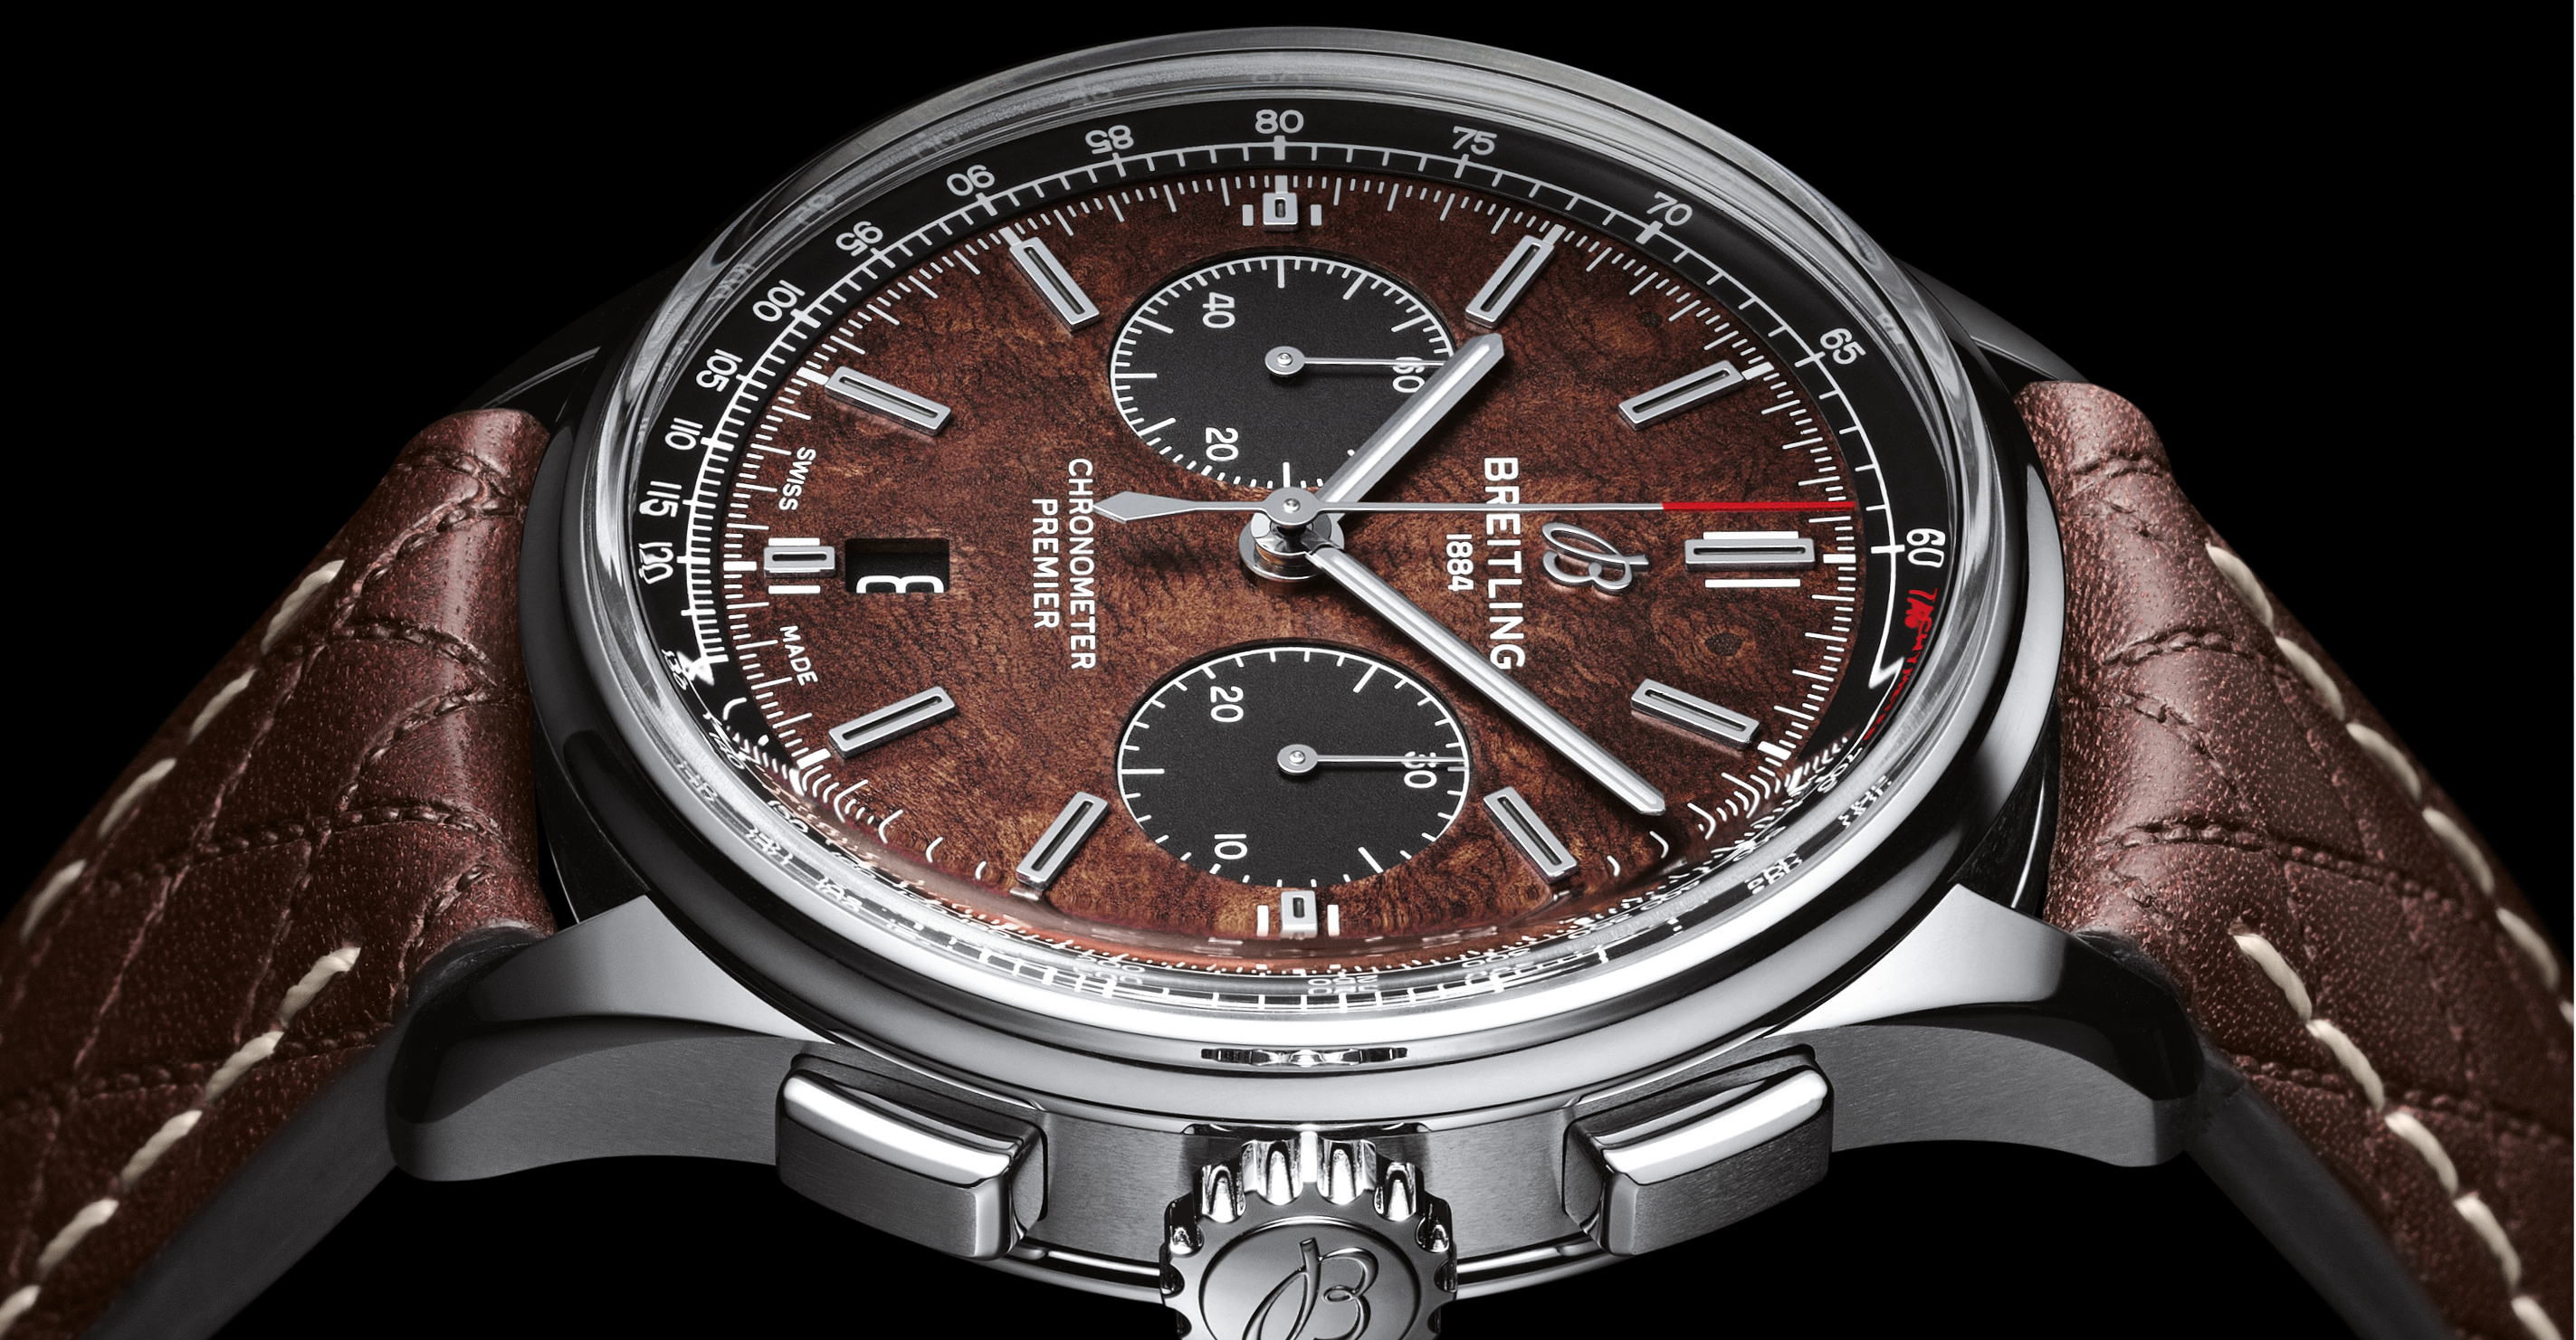 The Breitling Bentley Centenary Limited Edition timepiece